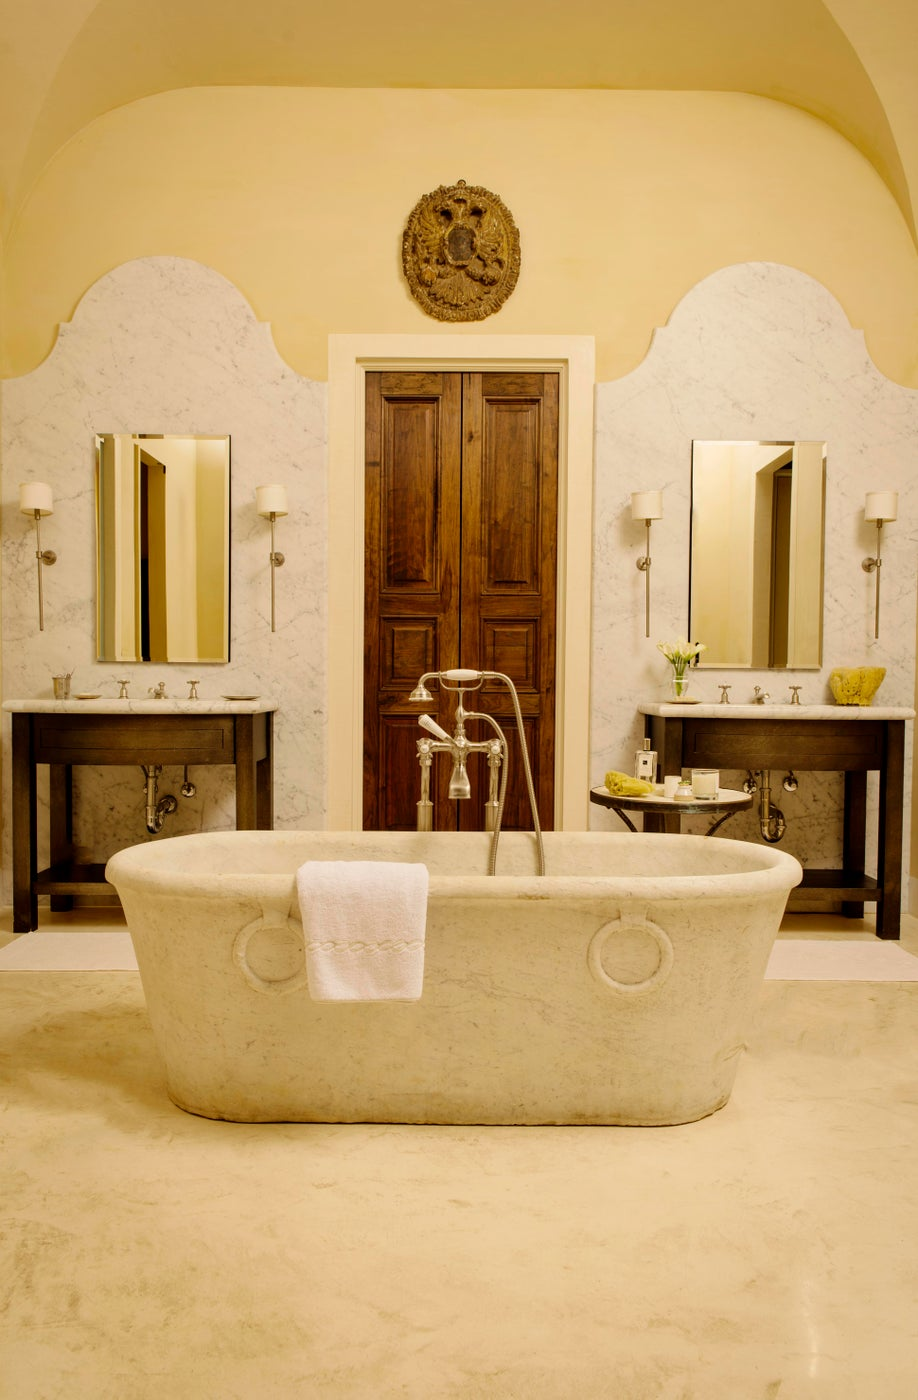 Tuscan Villa Style Home Inspired by Italian Classicism - Master Bath